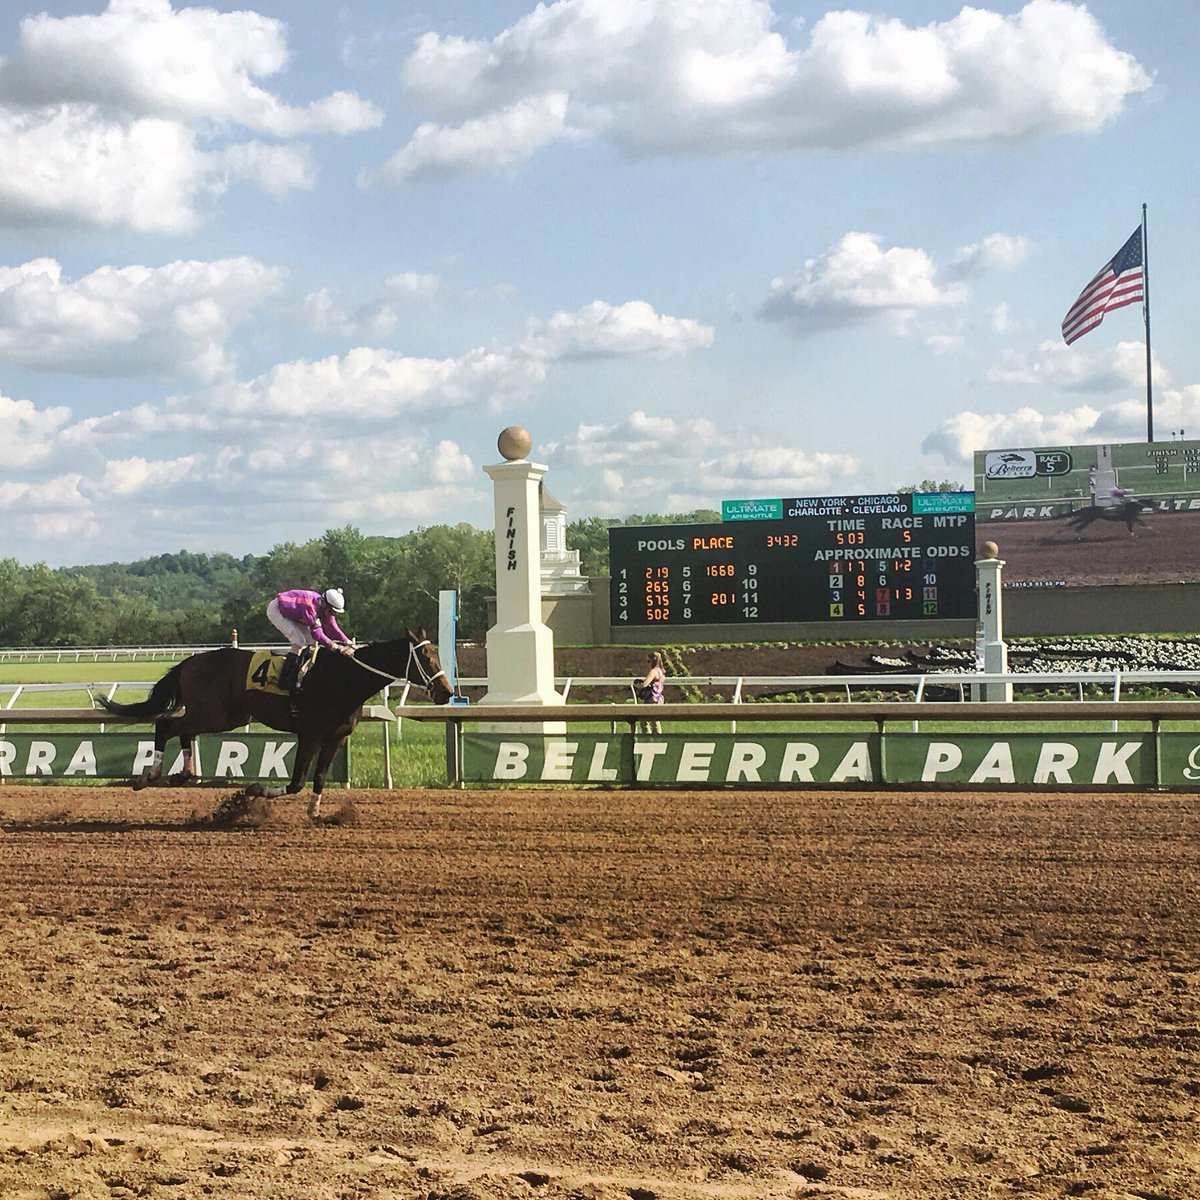 Run for the Roses @belterrapark for the Kentucky Derby. Enjoy live racing & more. Live racing post time is 1:30pm. https://t.co/vQZytqTLq7